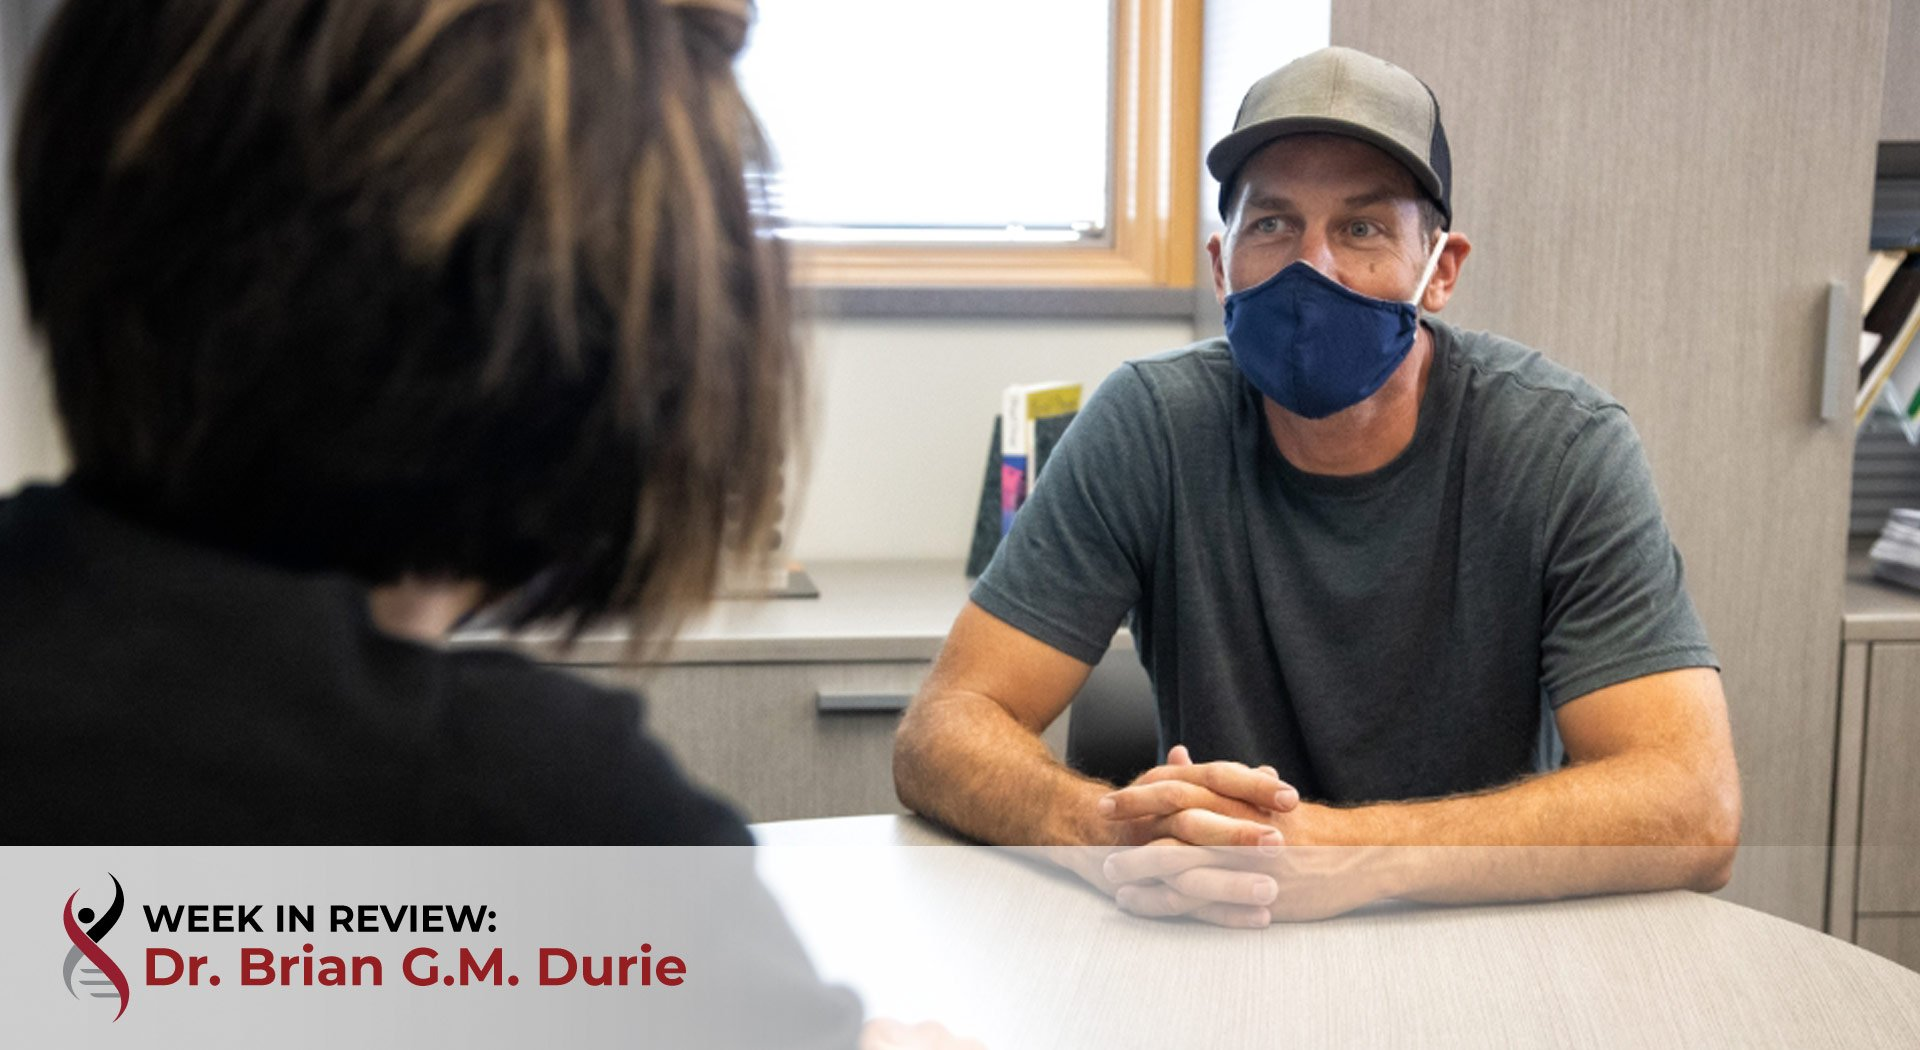 Health care worker with patient in mask